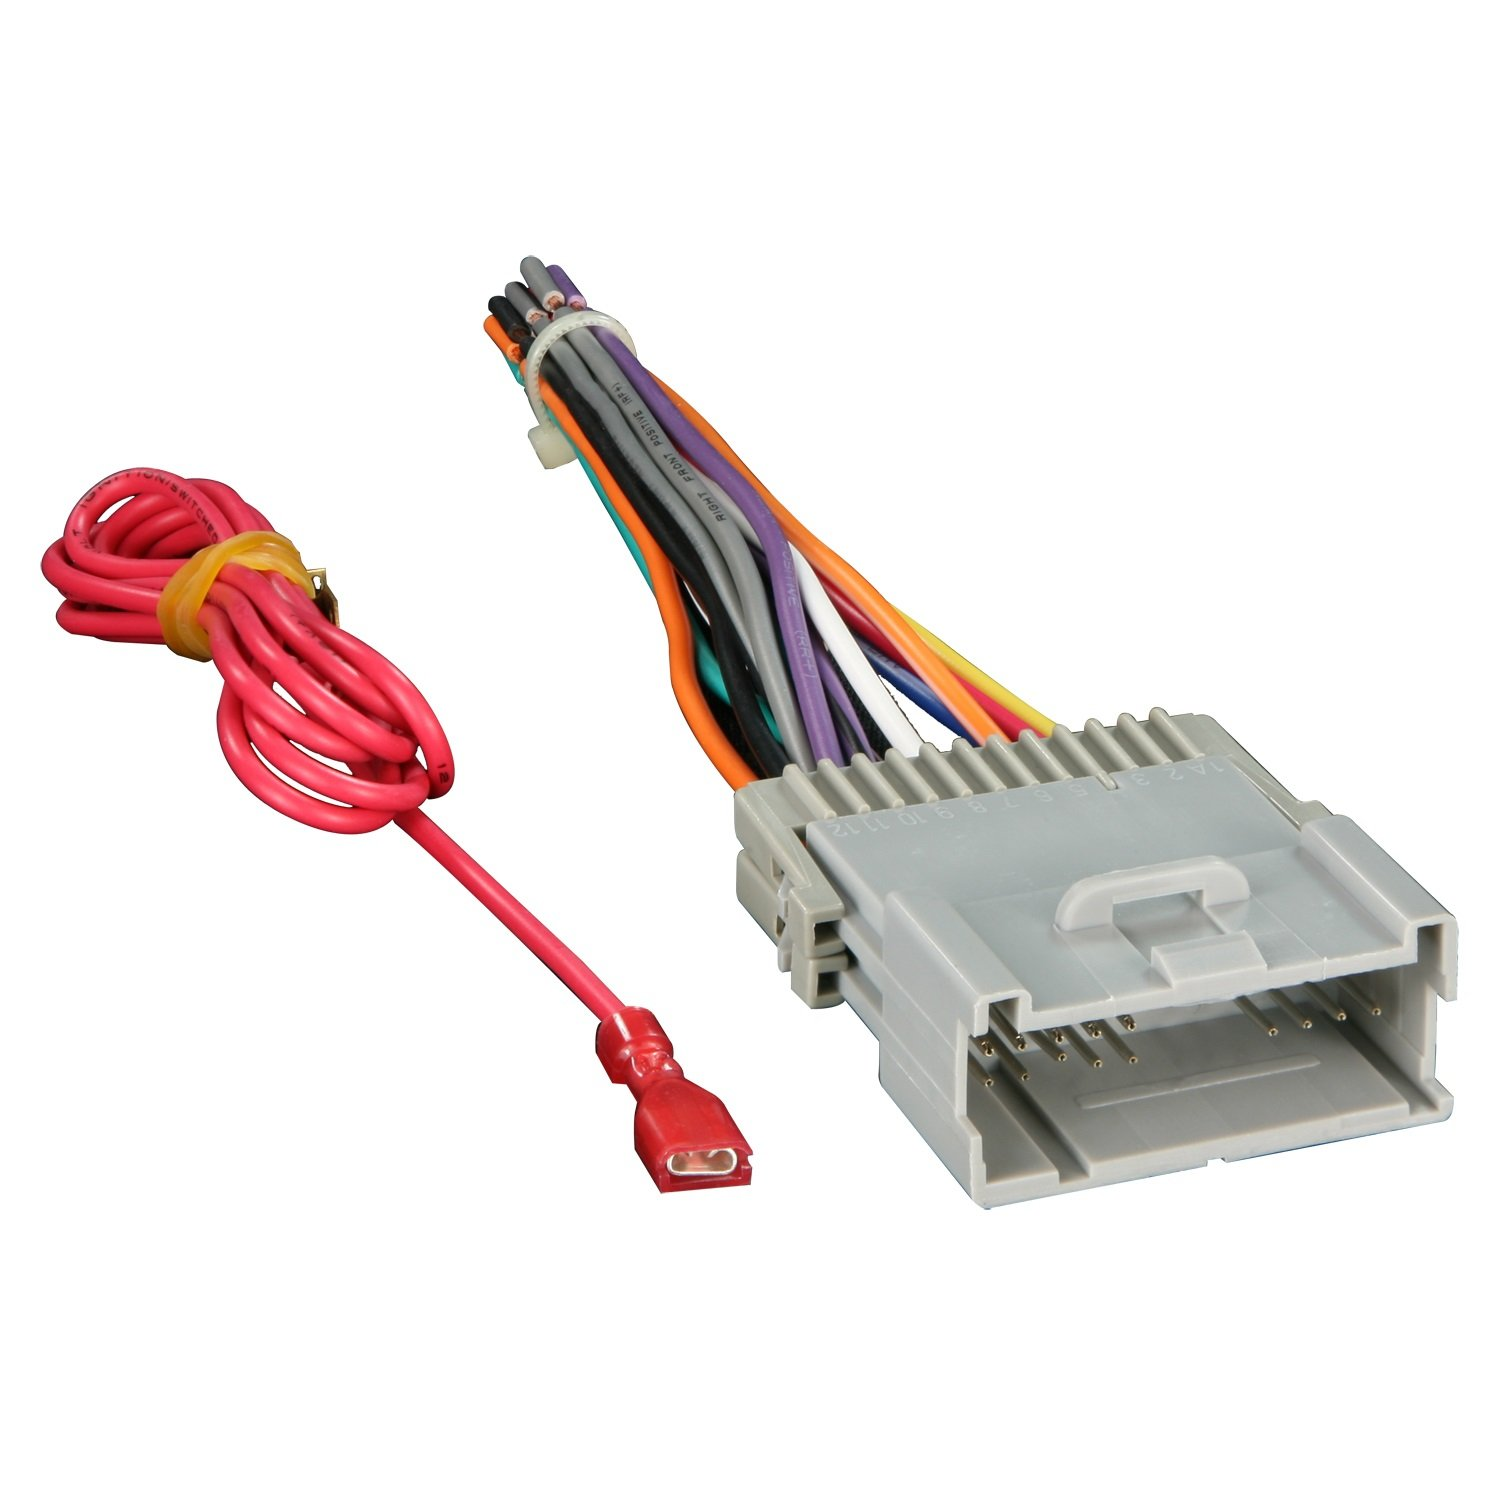 61eewxp9orL._SL1500_ amazon com metra 70 2003 radio wiring harness for gm 98 08 walmart wiring harness chevy at bayanpartner.co